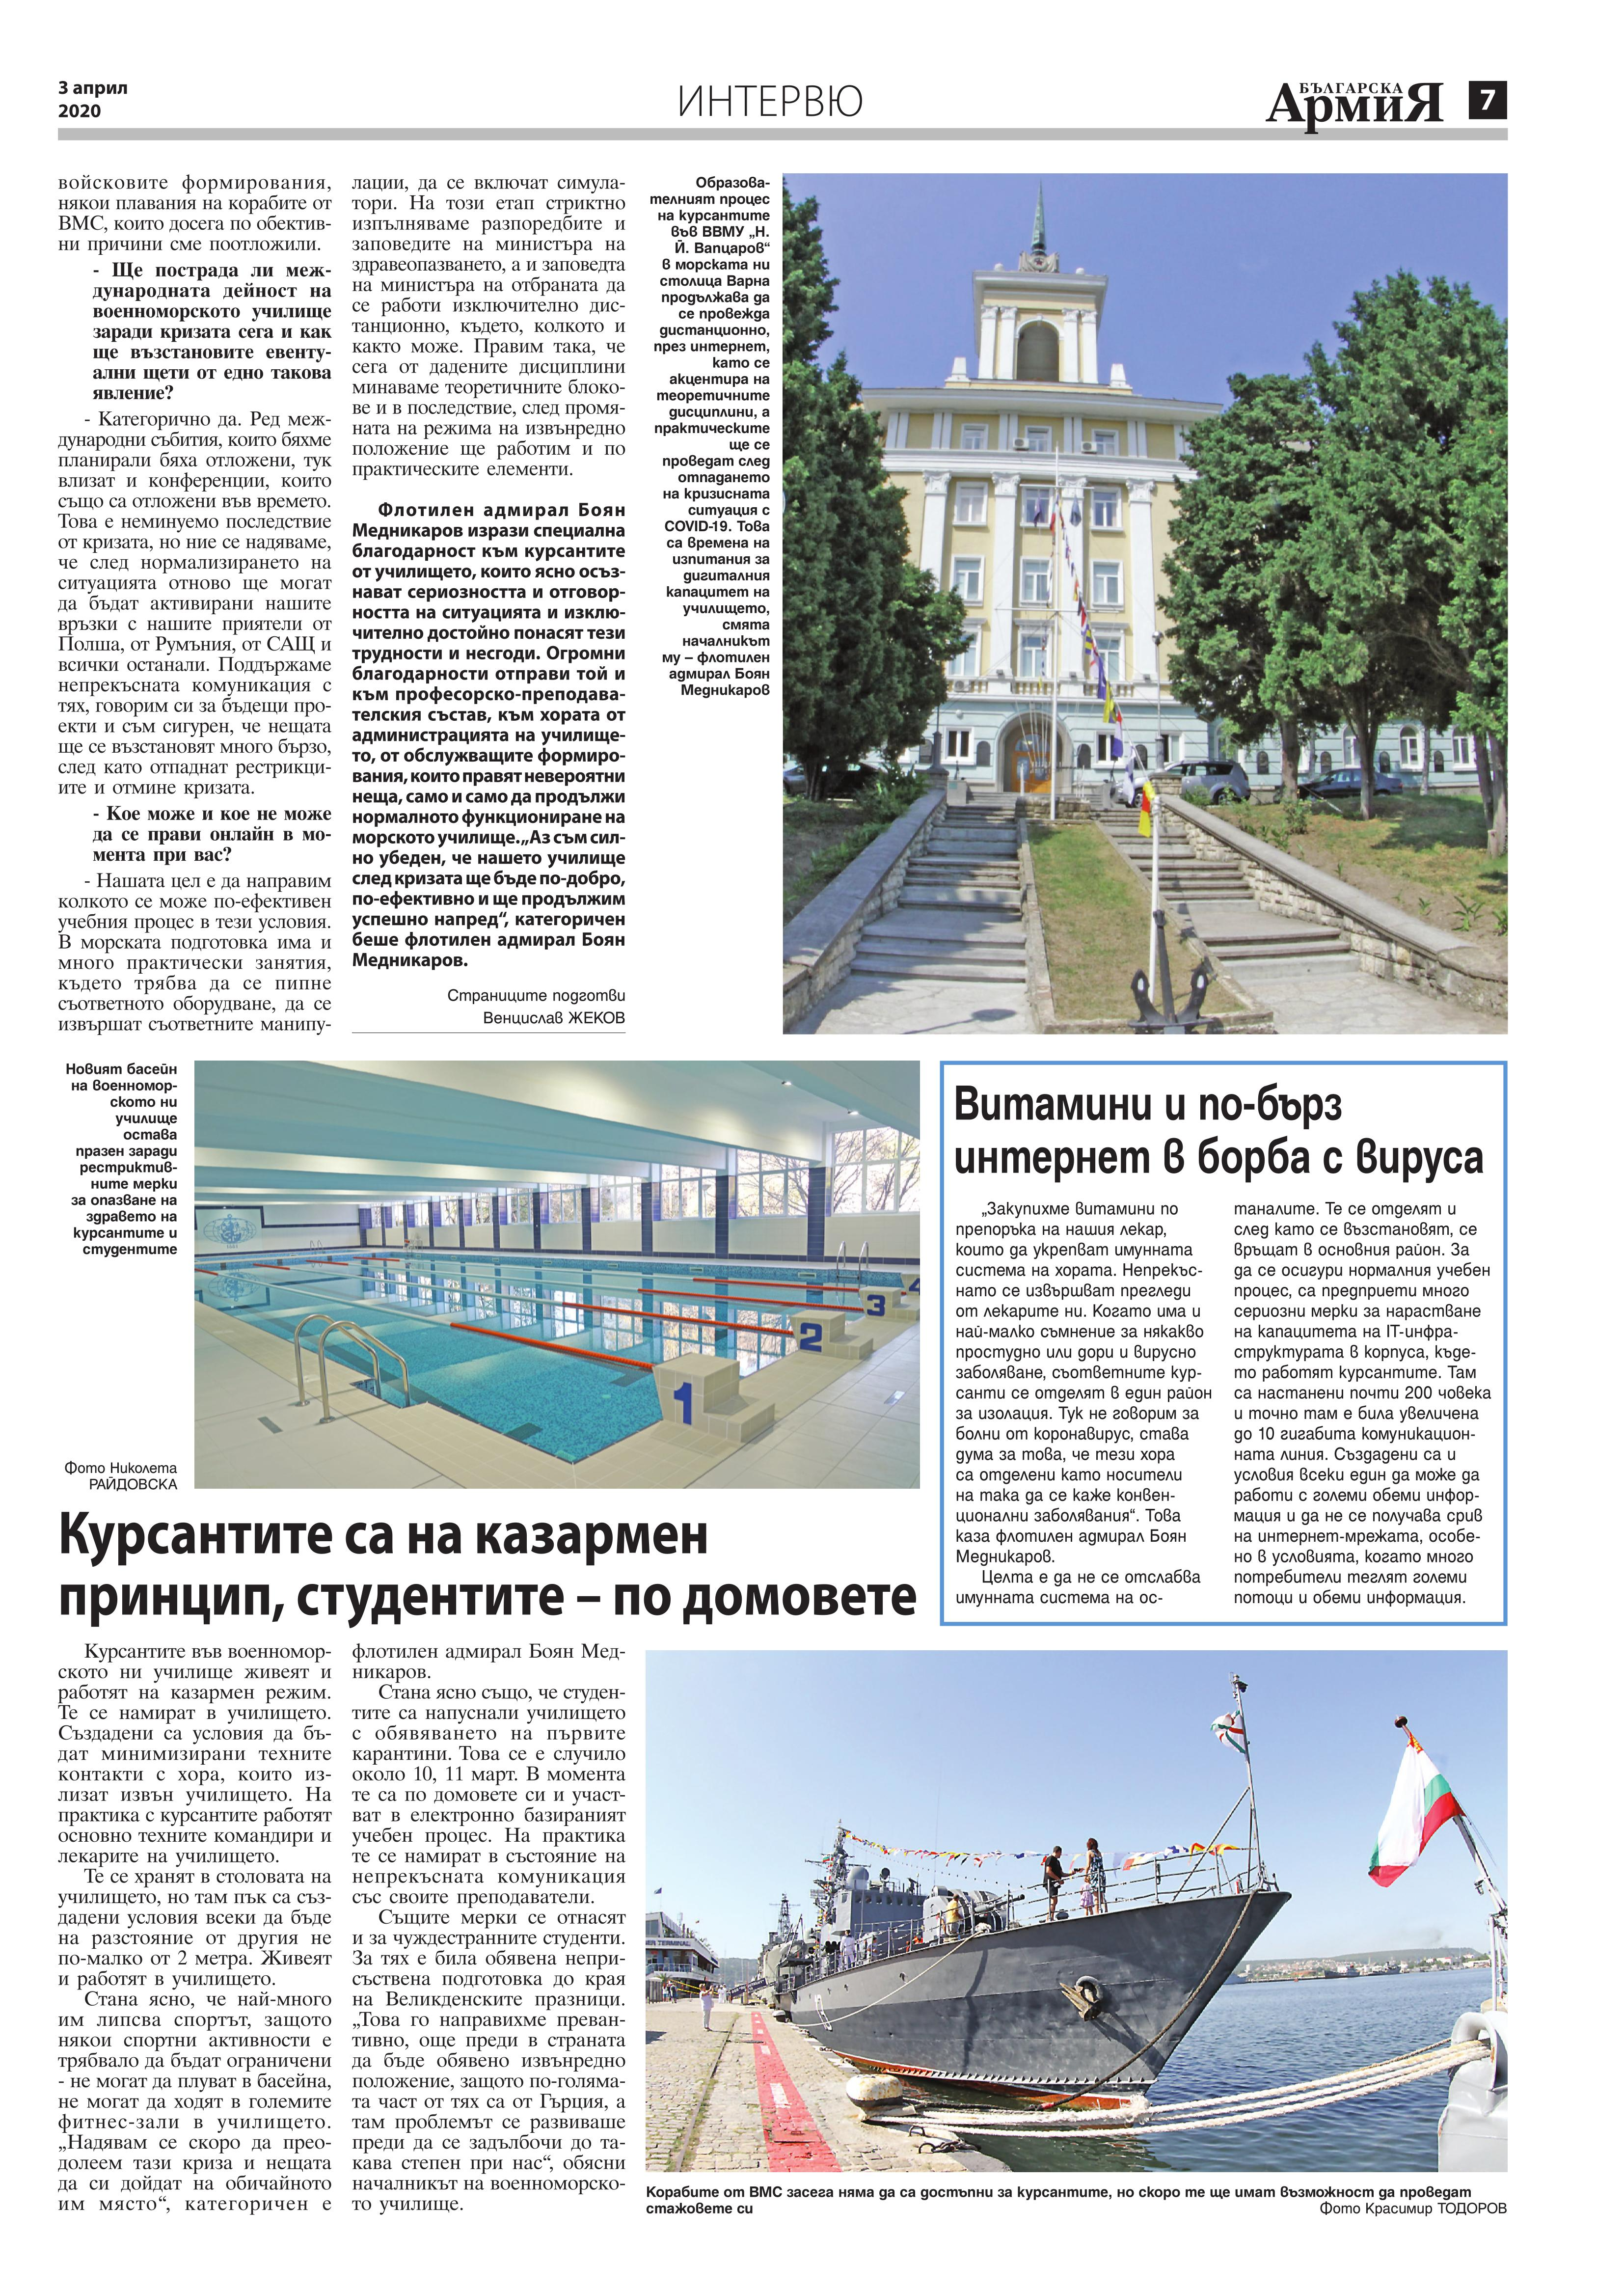 https://armymedia.bg/wp-content/uploads/2015/06/07.page1_-130.jpg